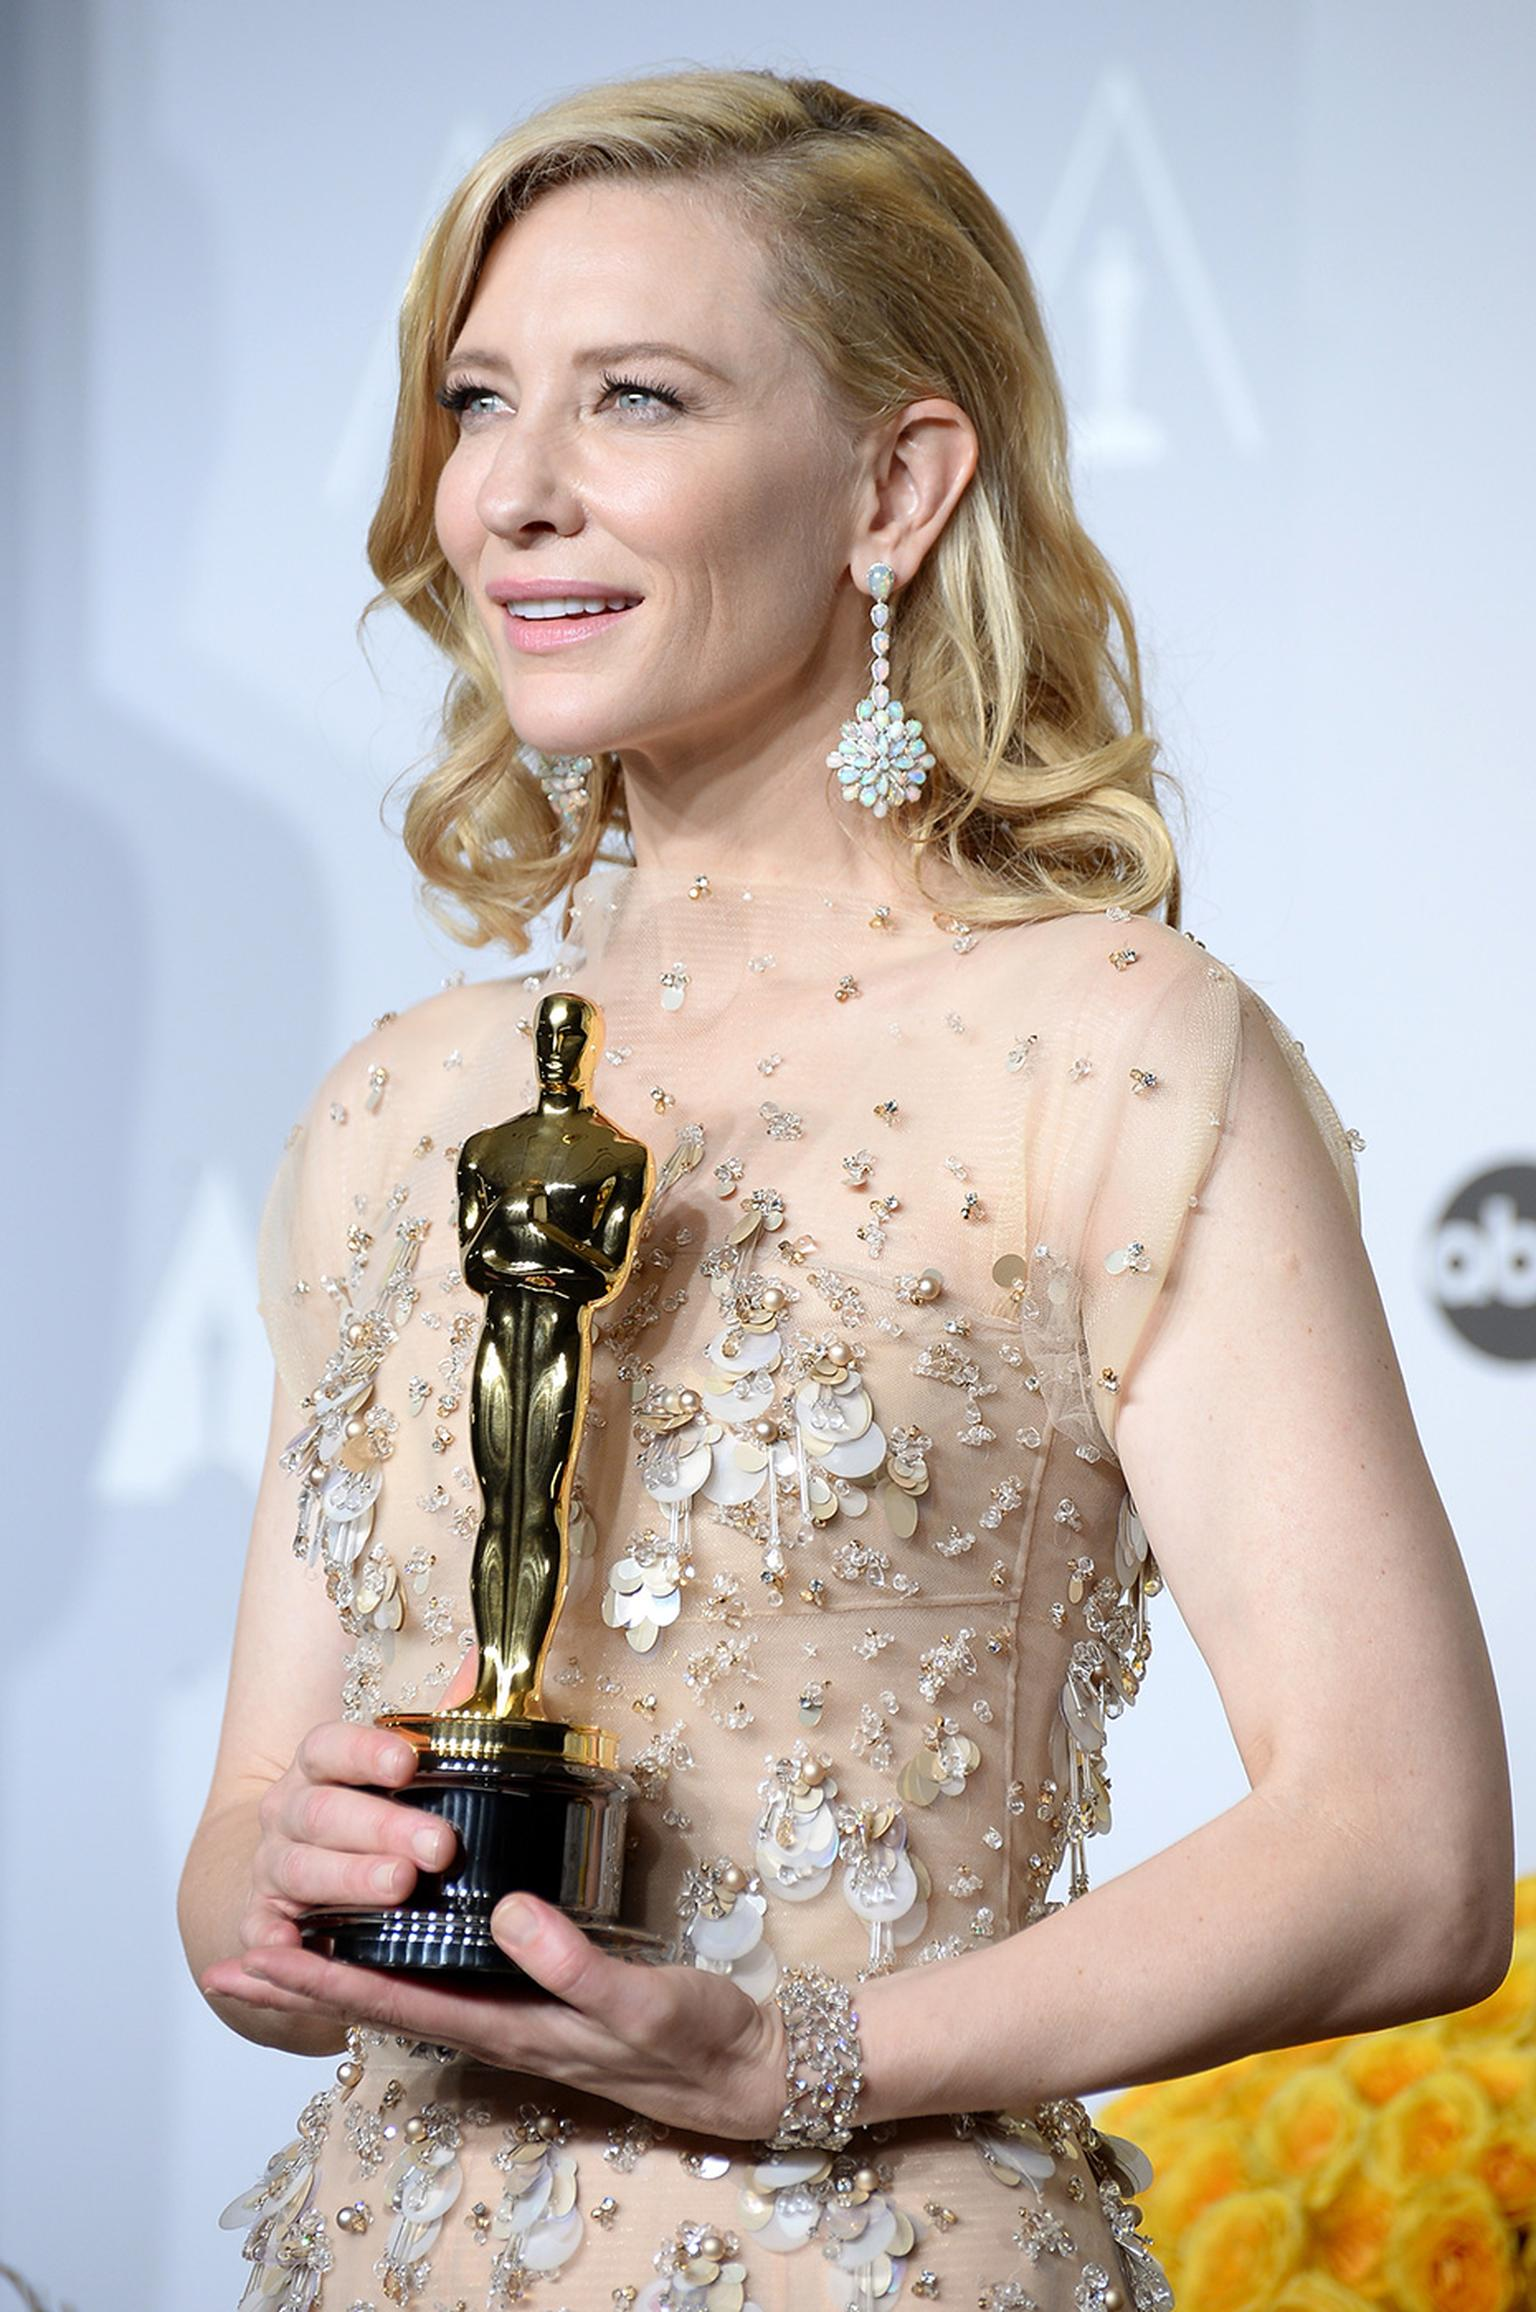 Academy Awards Winner for Best Actress in a Leading Role, Cate Blanchett, gave a preview of Chopard's 2014 Red Carpet Collection at the 2014 Oscars